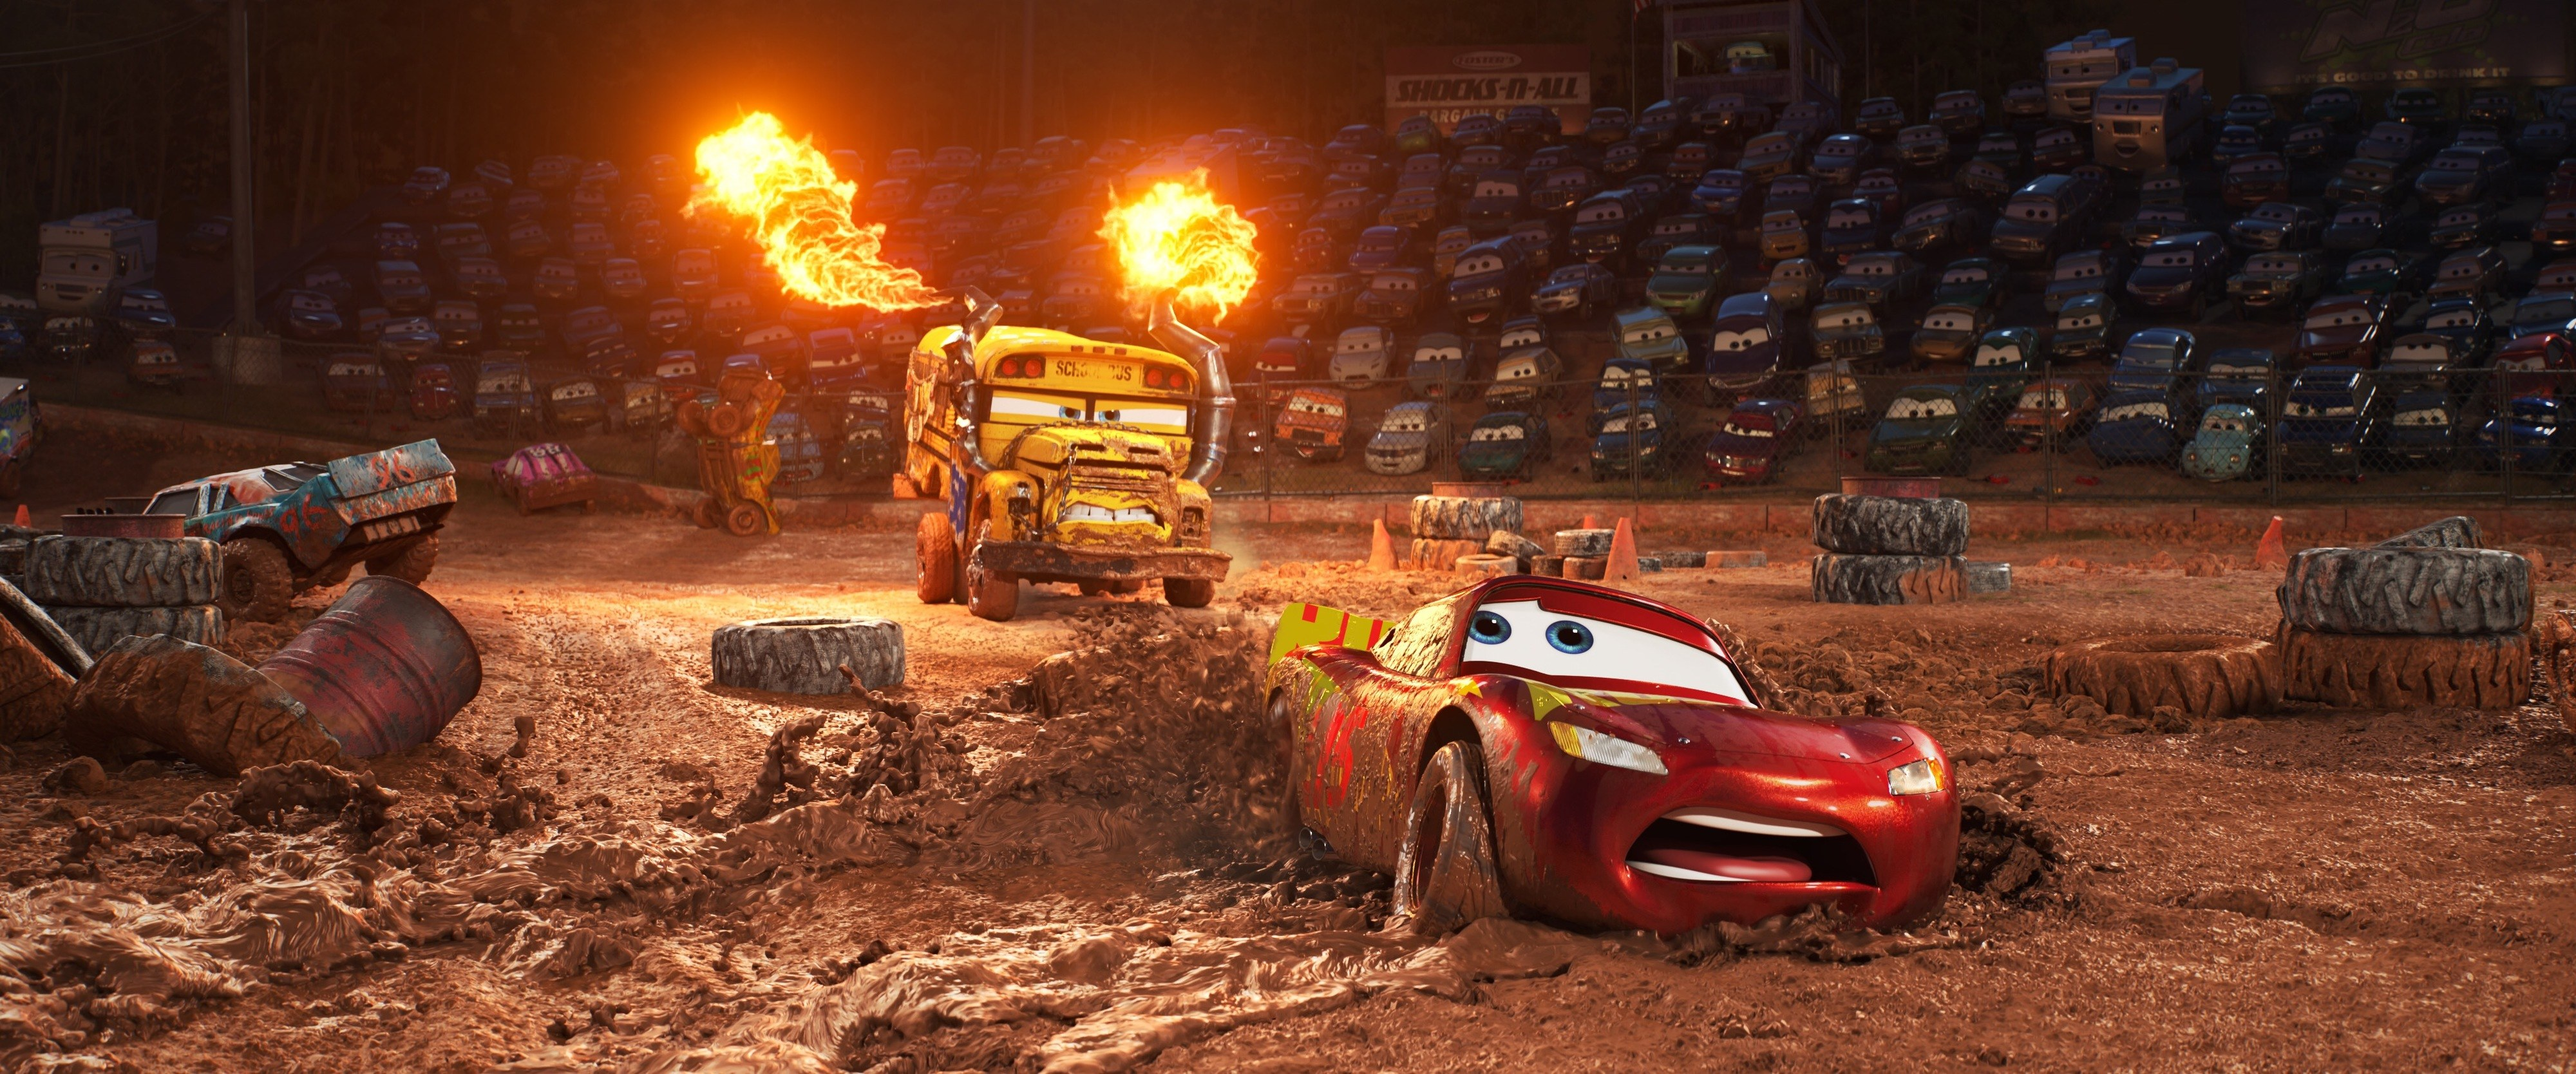 Are Lightning's Racing Days Over? – New Trailer Released for Disney-Pixar's Cars 3